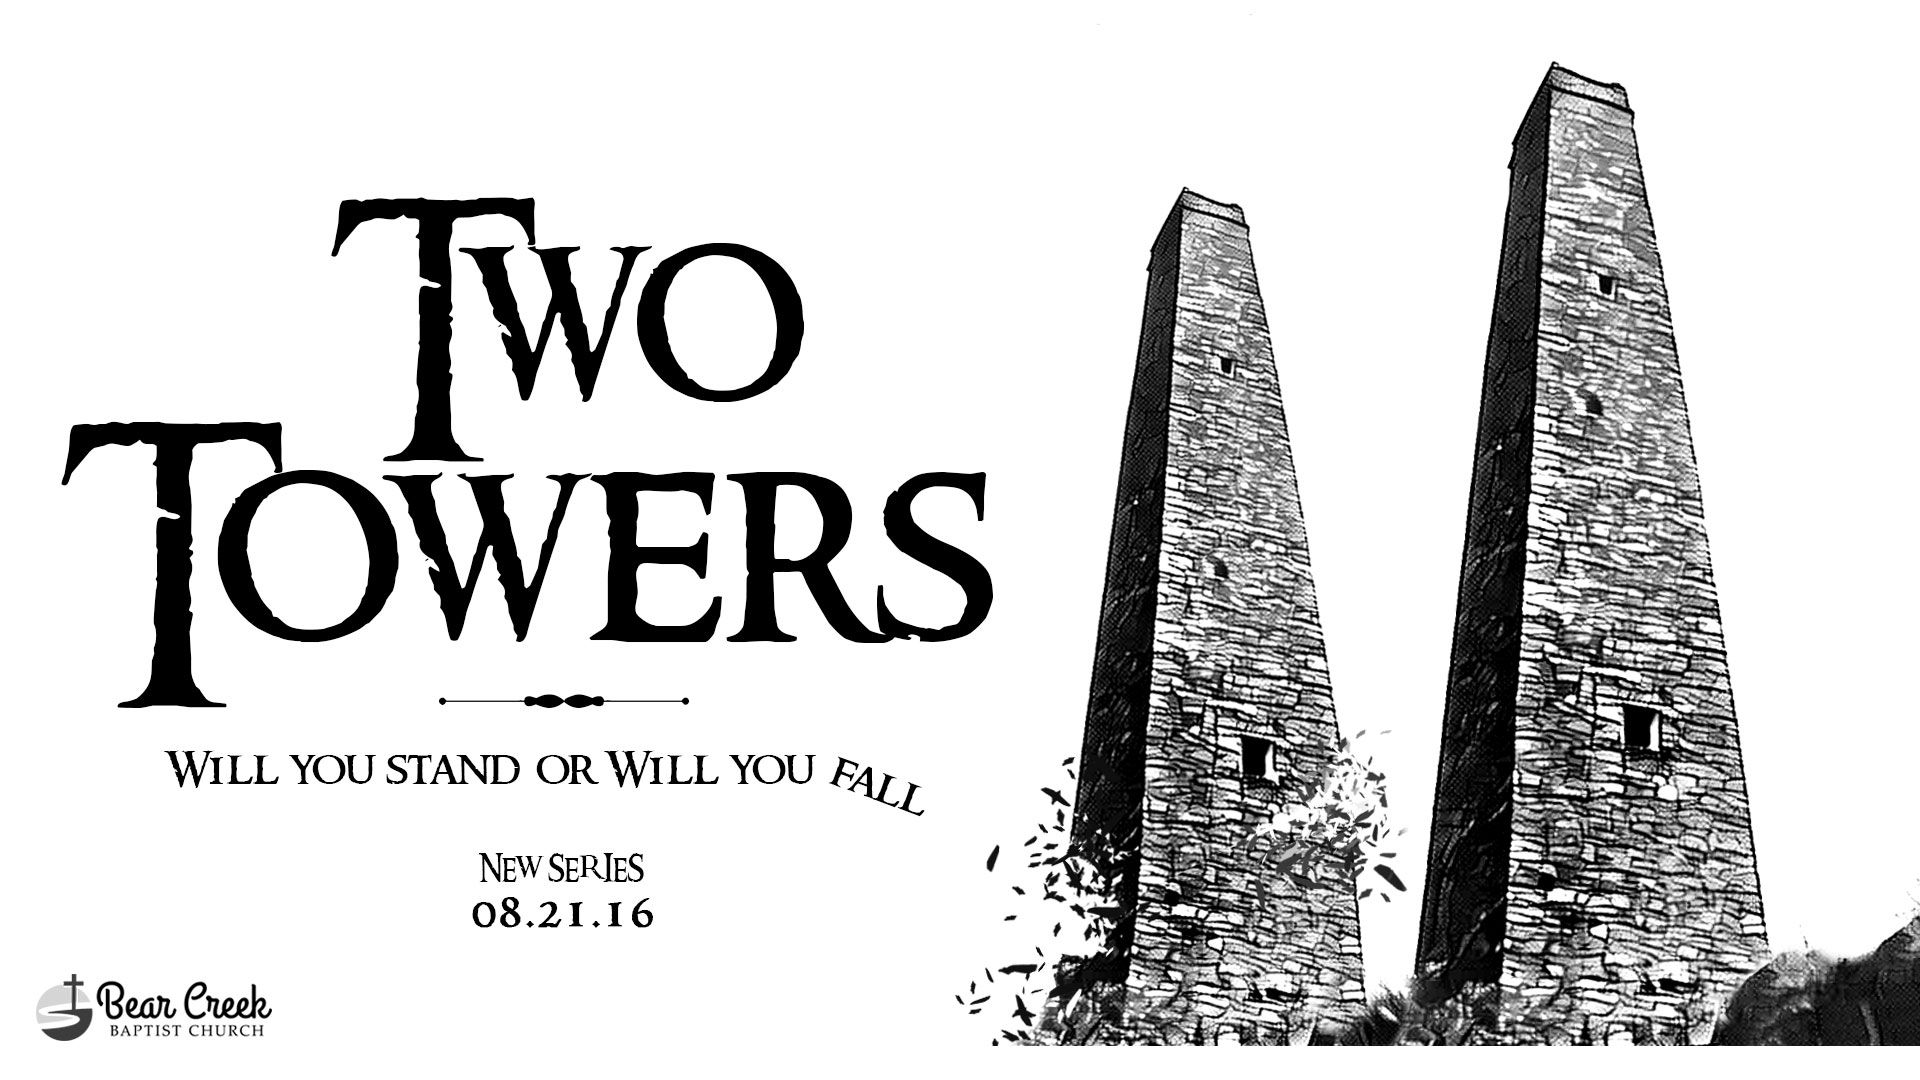 two towers, message, series